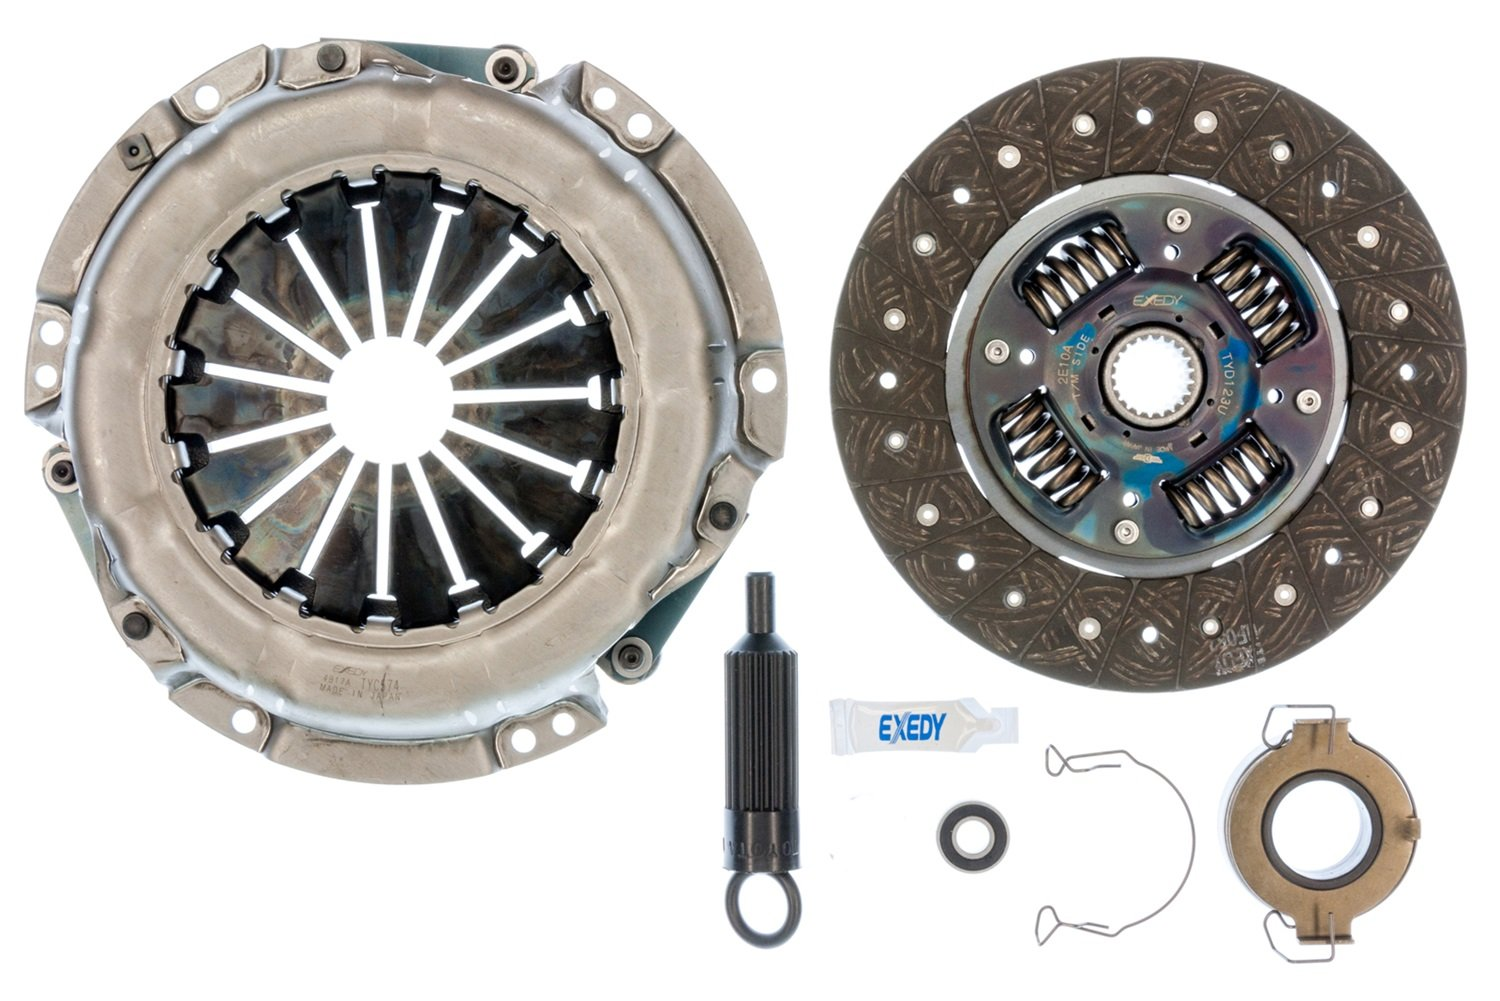 EXEDY 16082 OEM Replacement Clutch Kit by Exedy